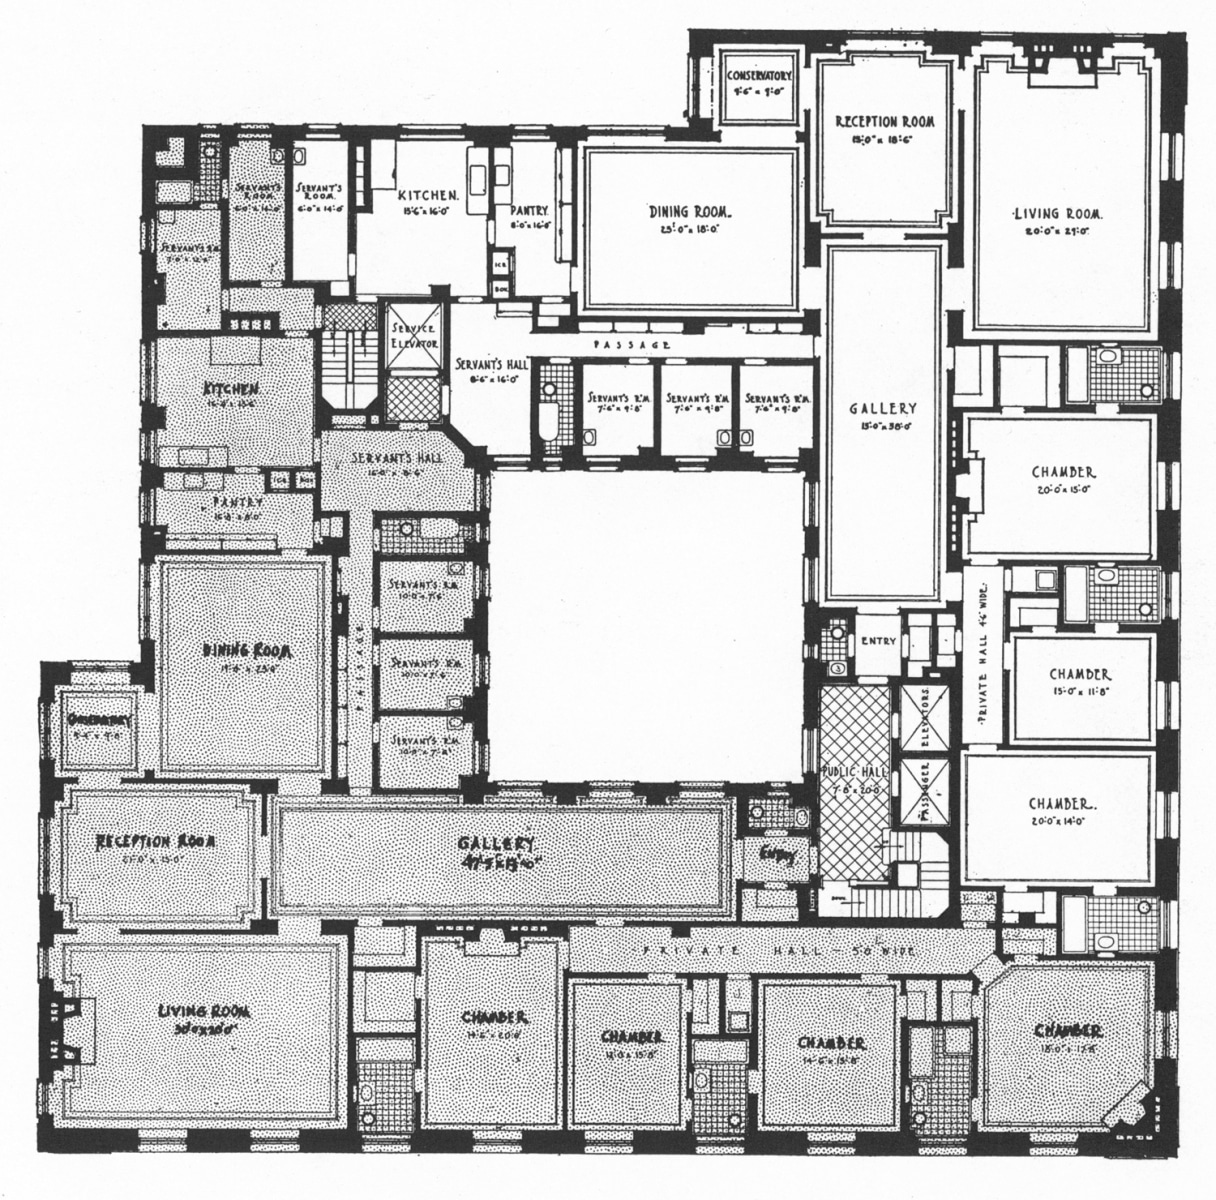 Meet huguette clark 39 s 39 little people 39 a collector of for Traditions of america floor plans